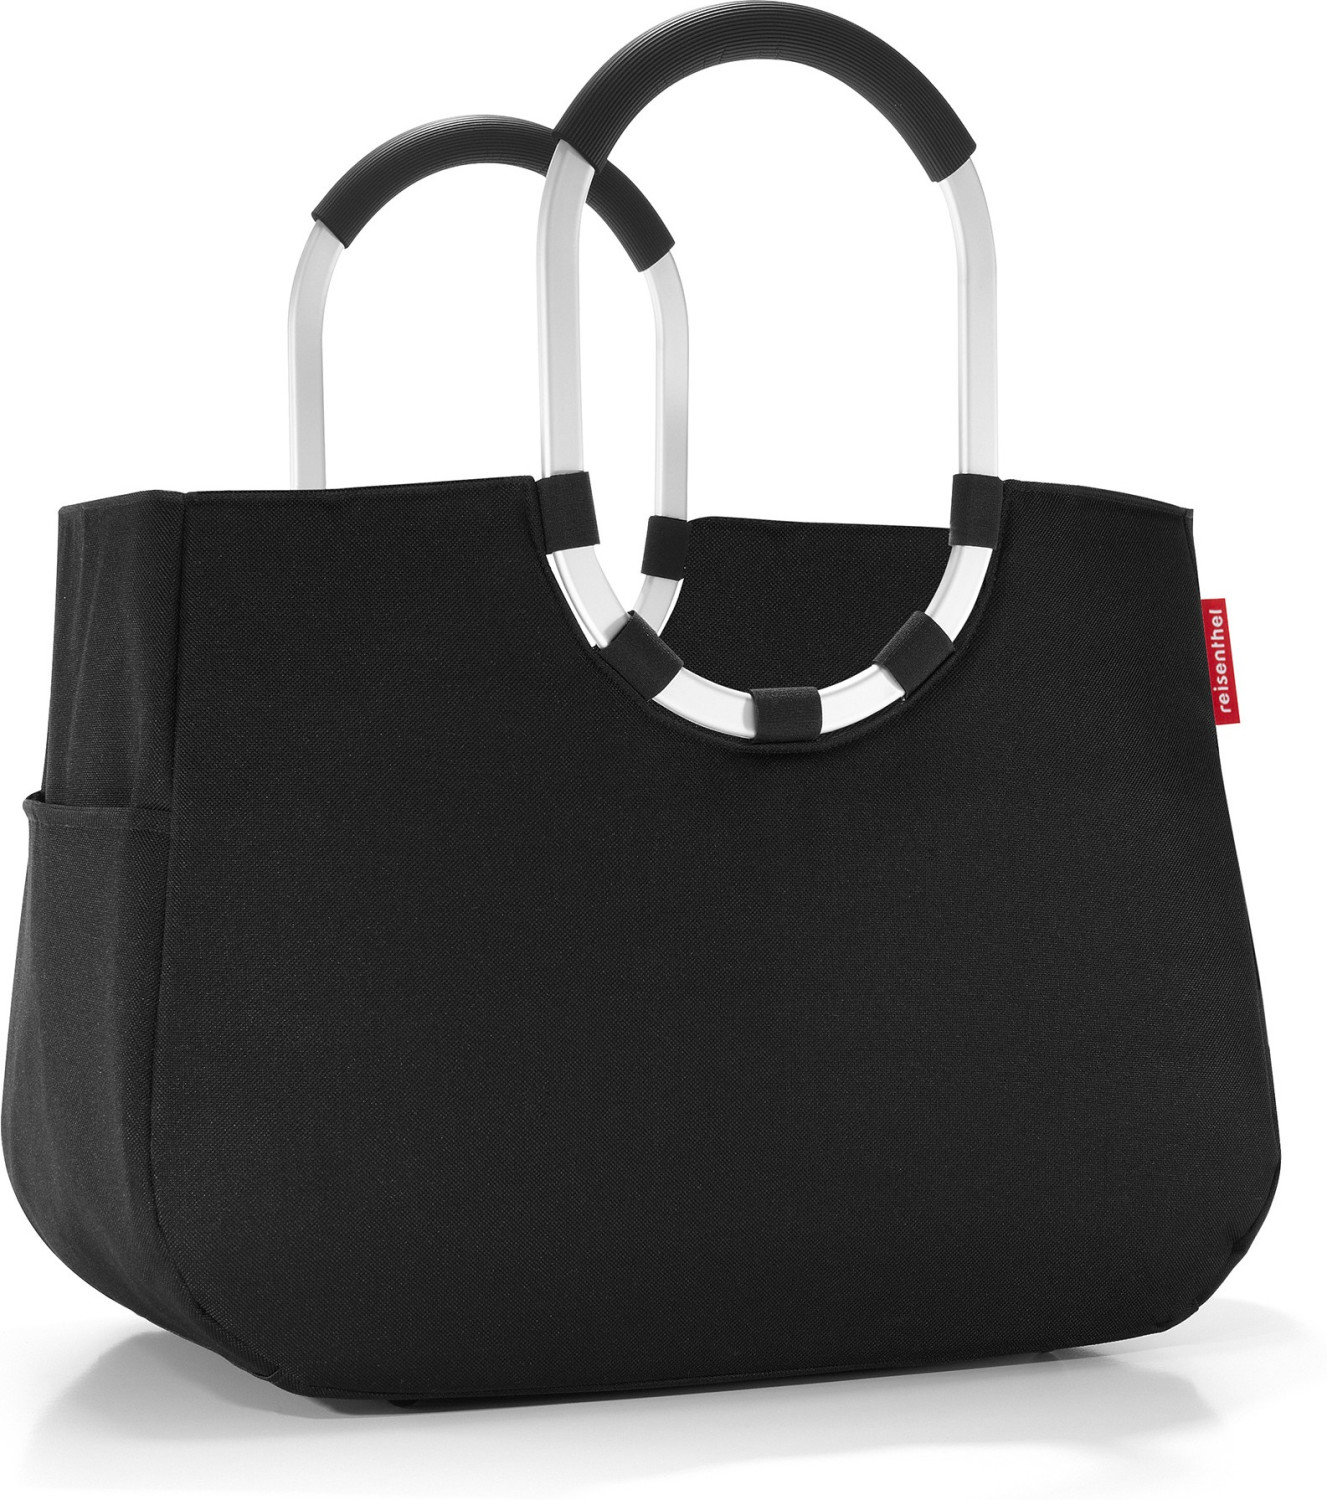 Reisenthel Loopshopper L black